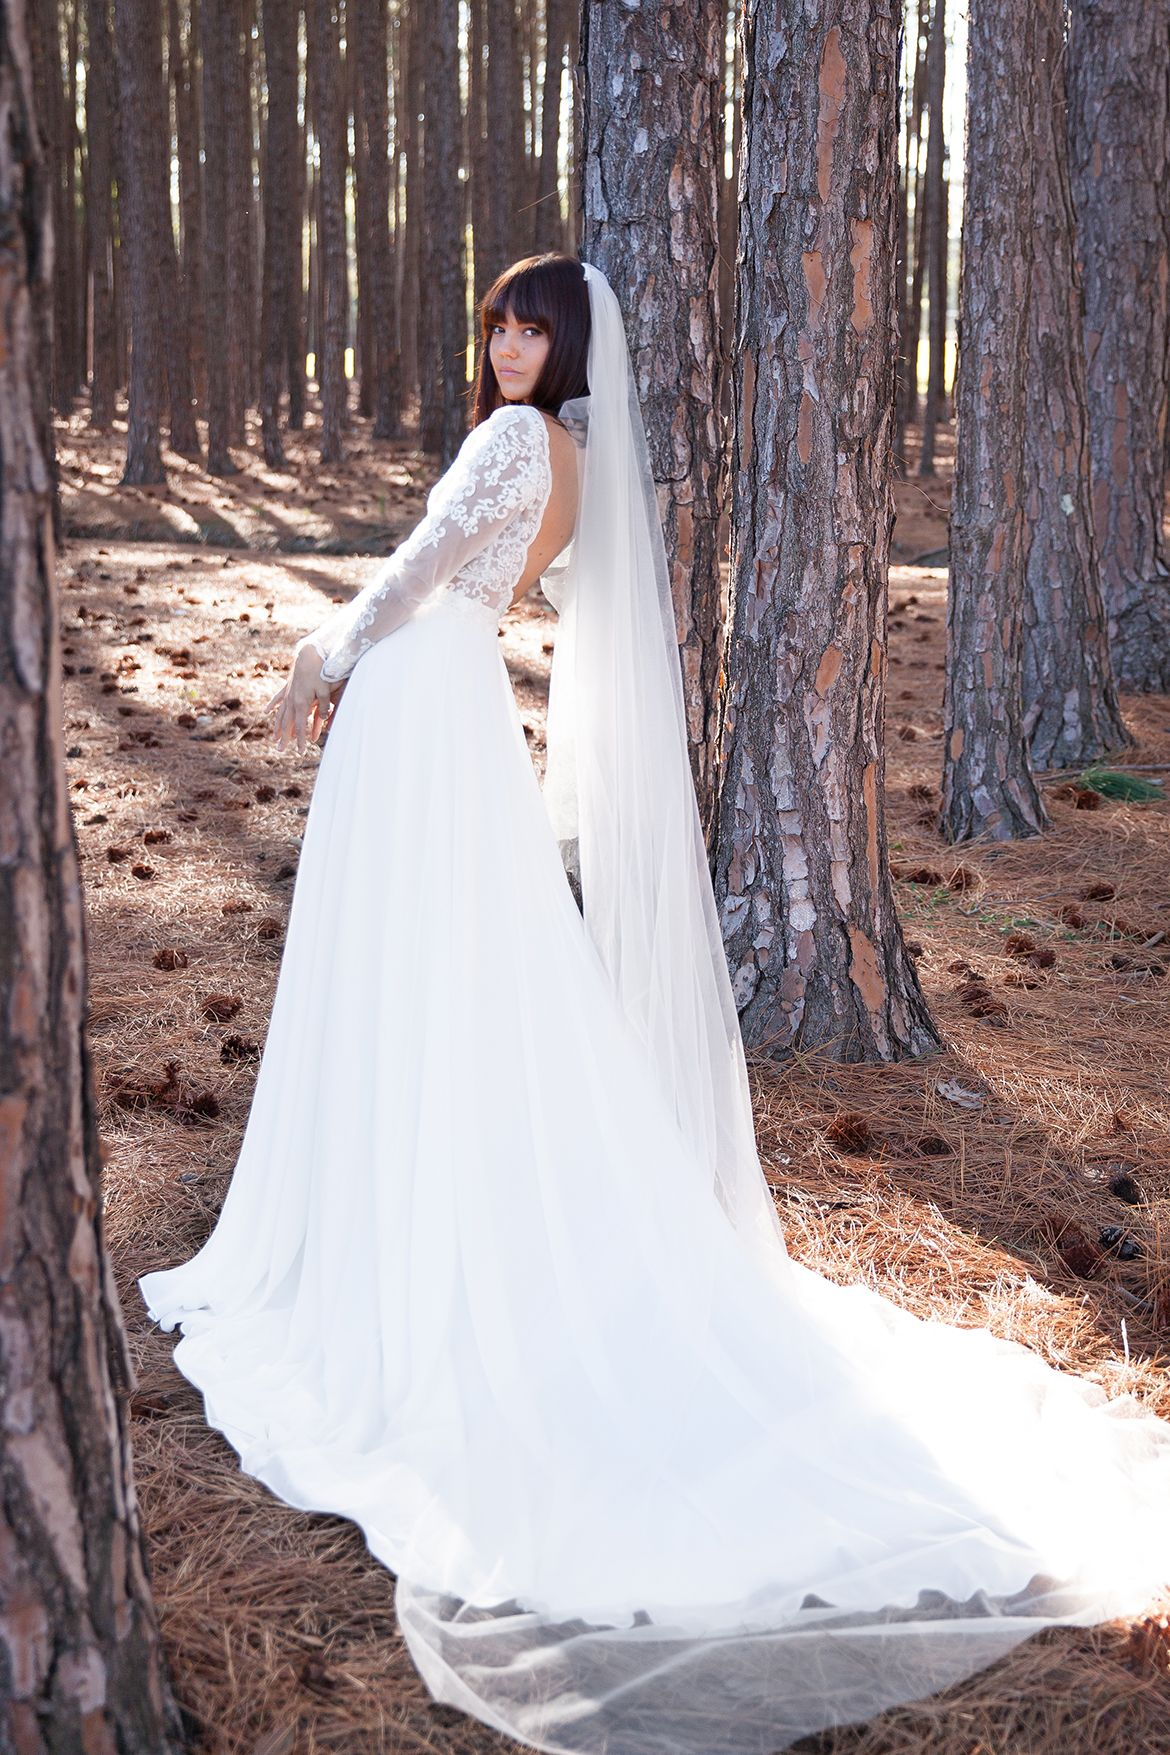 Lace arm wedding dress  long lace sleeve wedding dress with low back and train